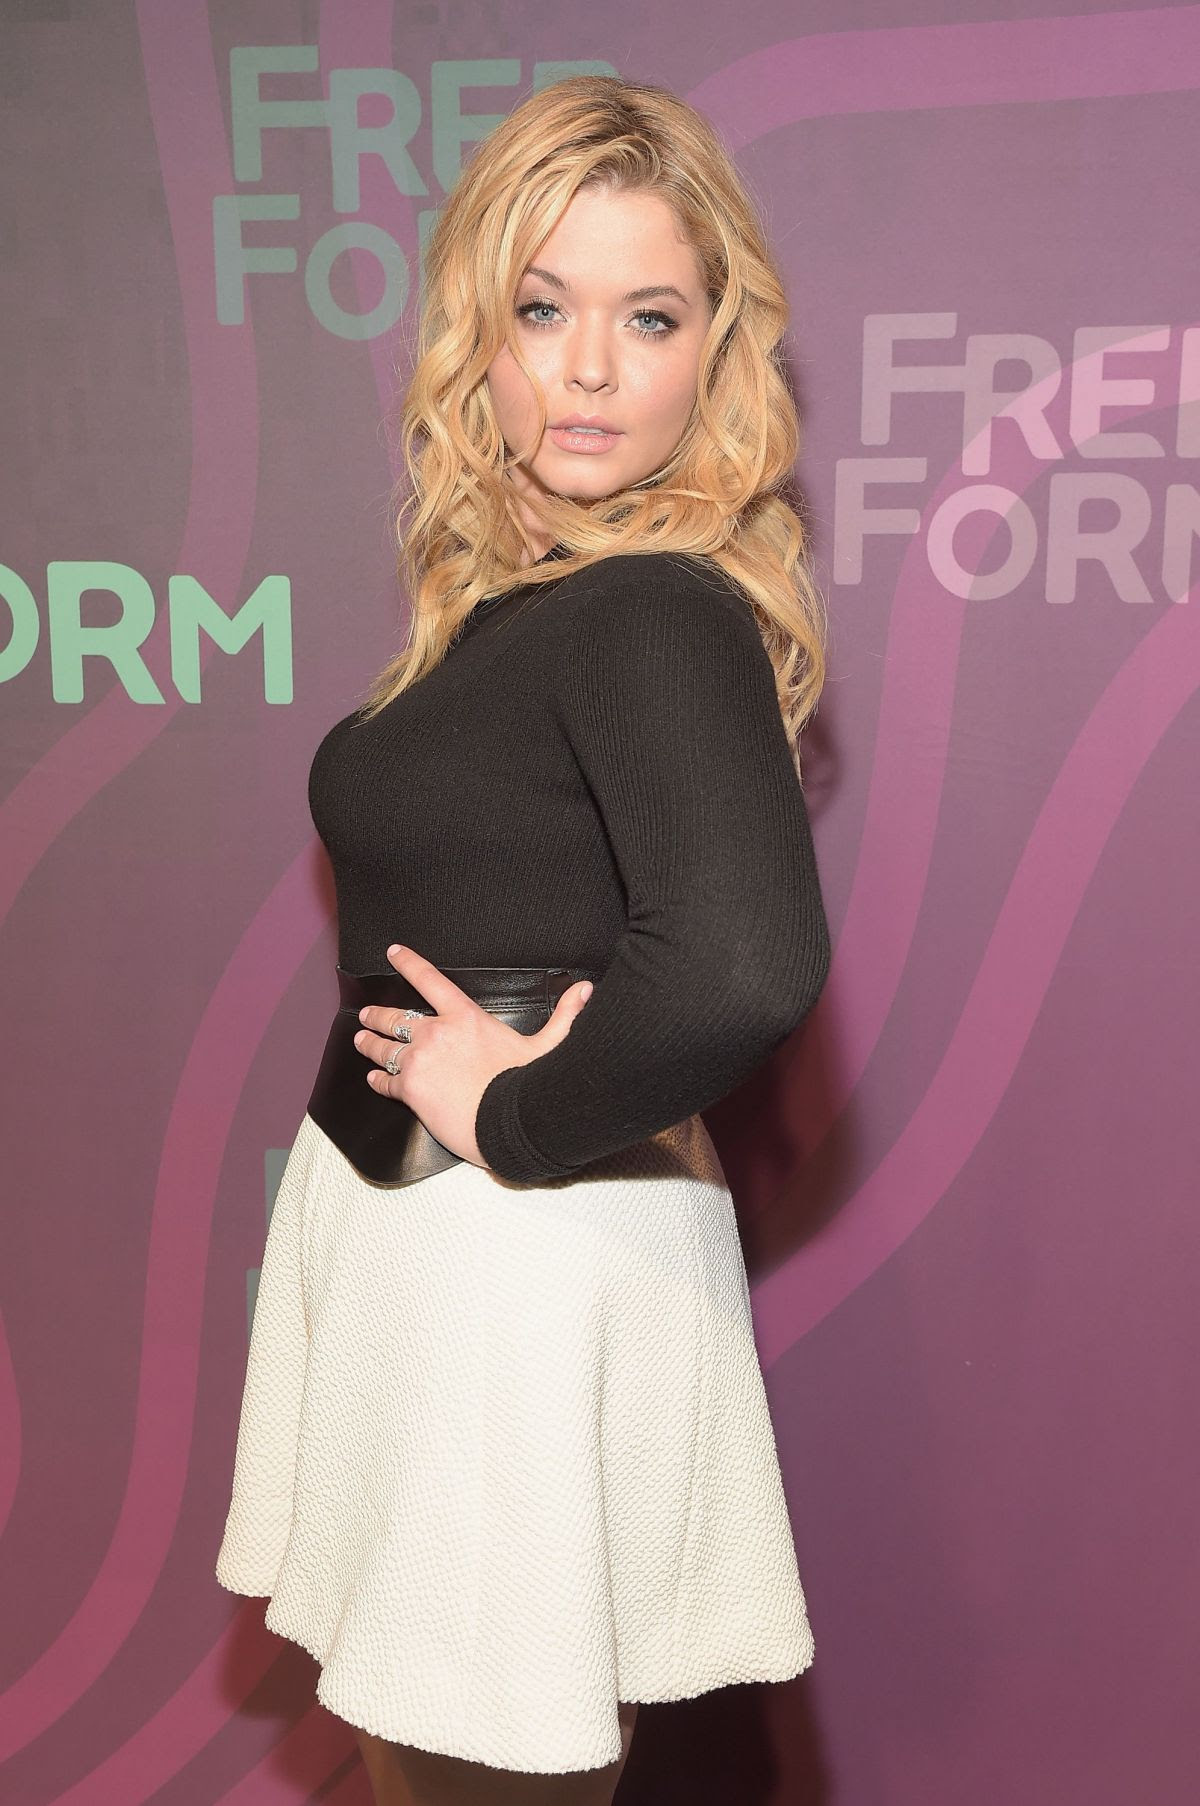 SASHA PIETERSE at 2016 ABC Freeform Upfront in New York 04/07/2016